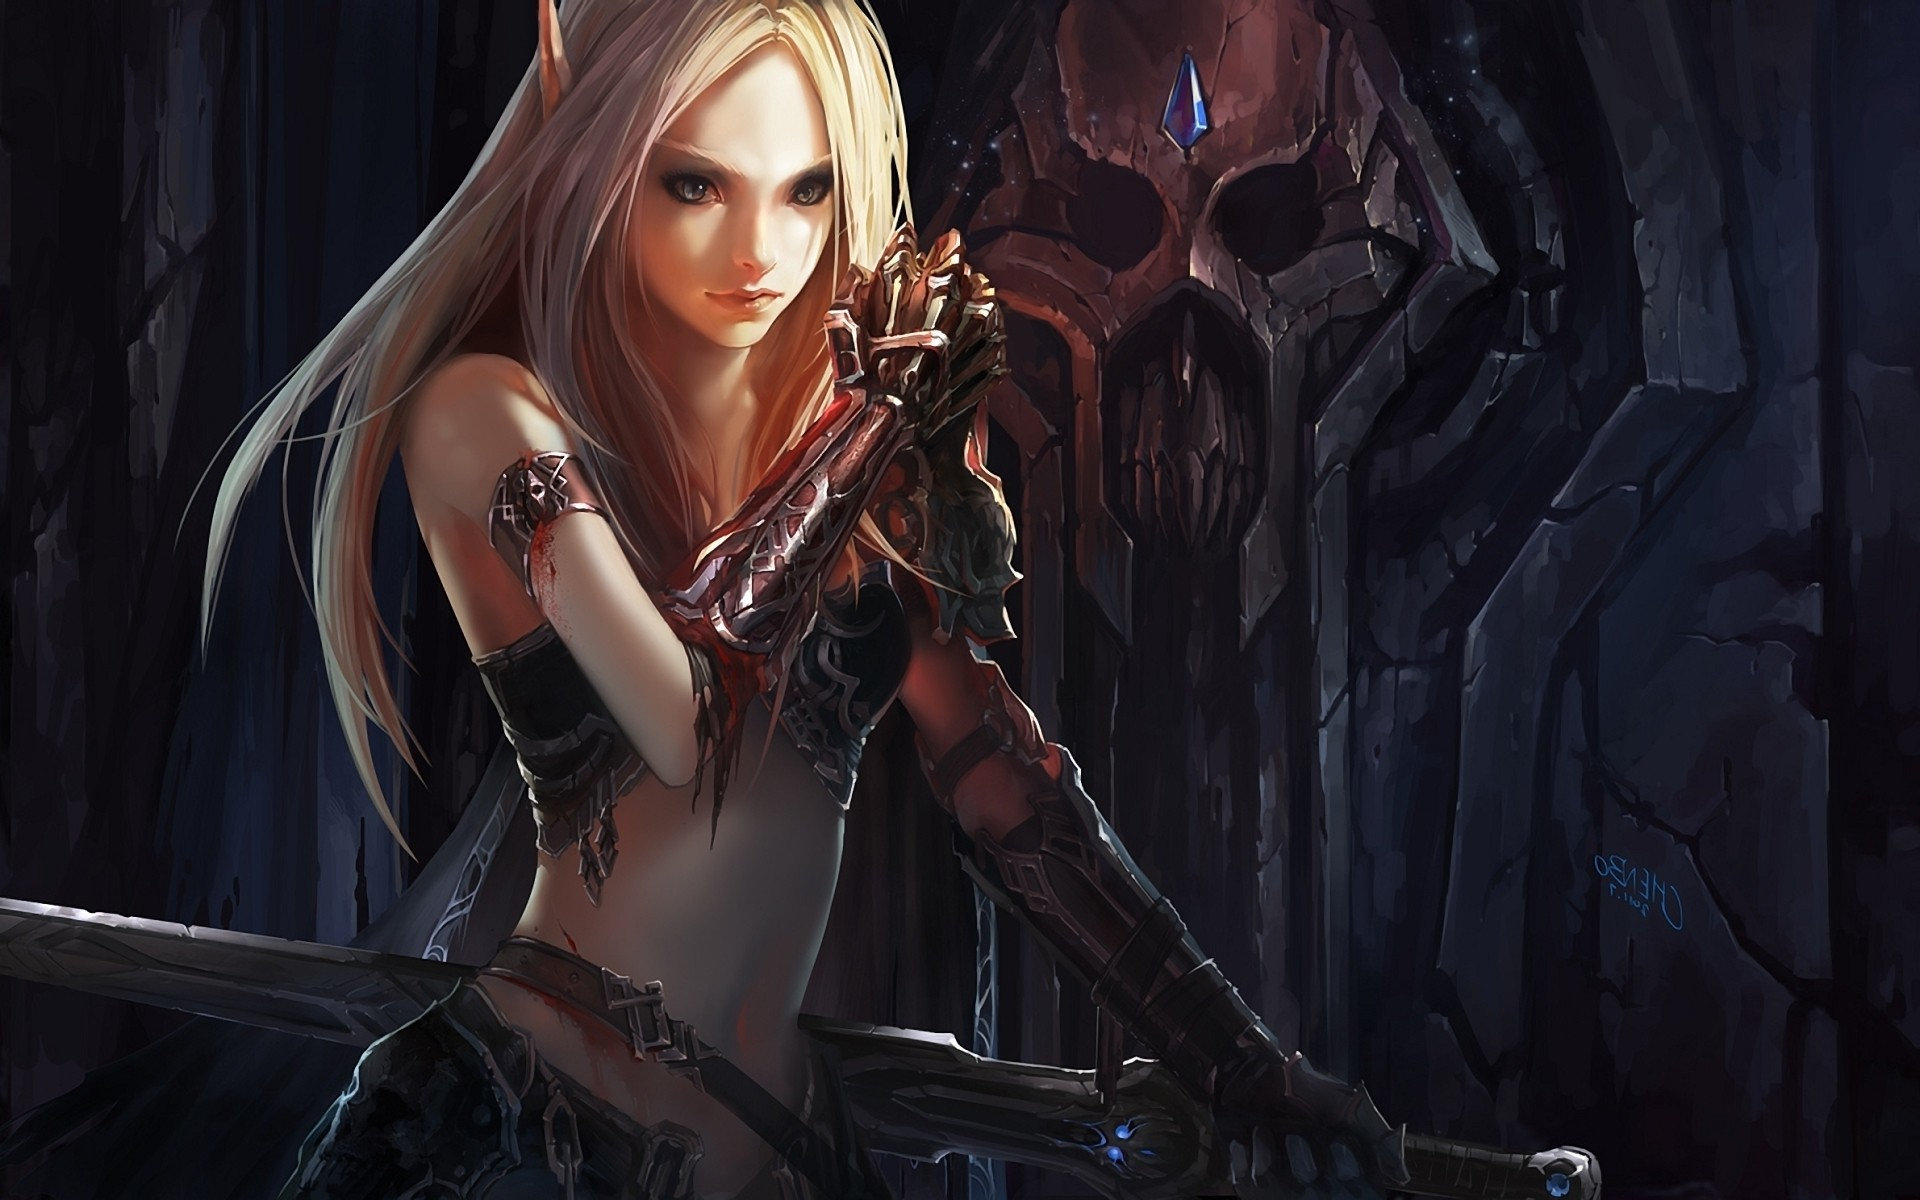 1920x1200 Video Game - World Of Warcraft - Fantasy - Woman - Elf - Magic Wallpaper